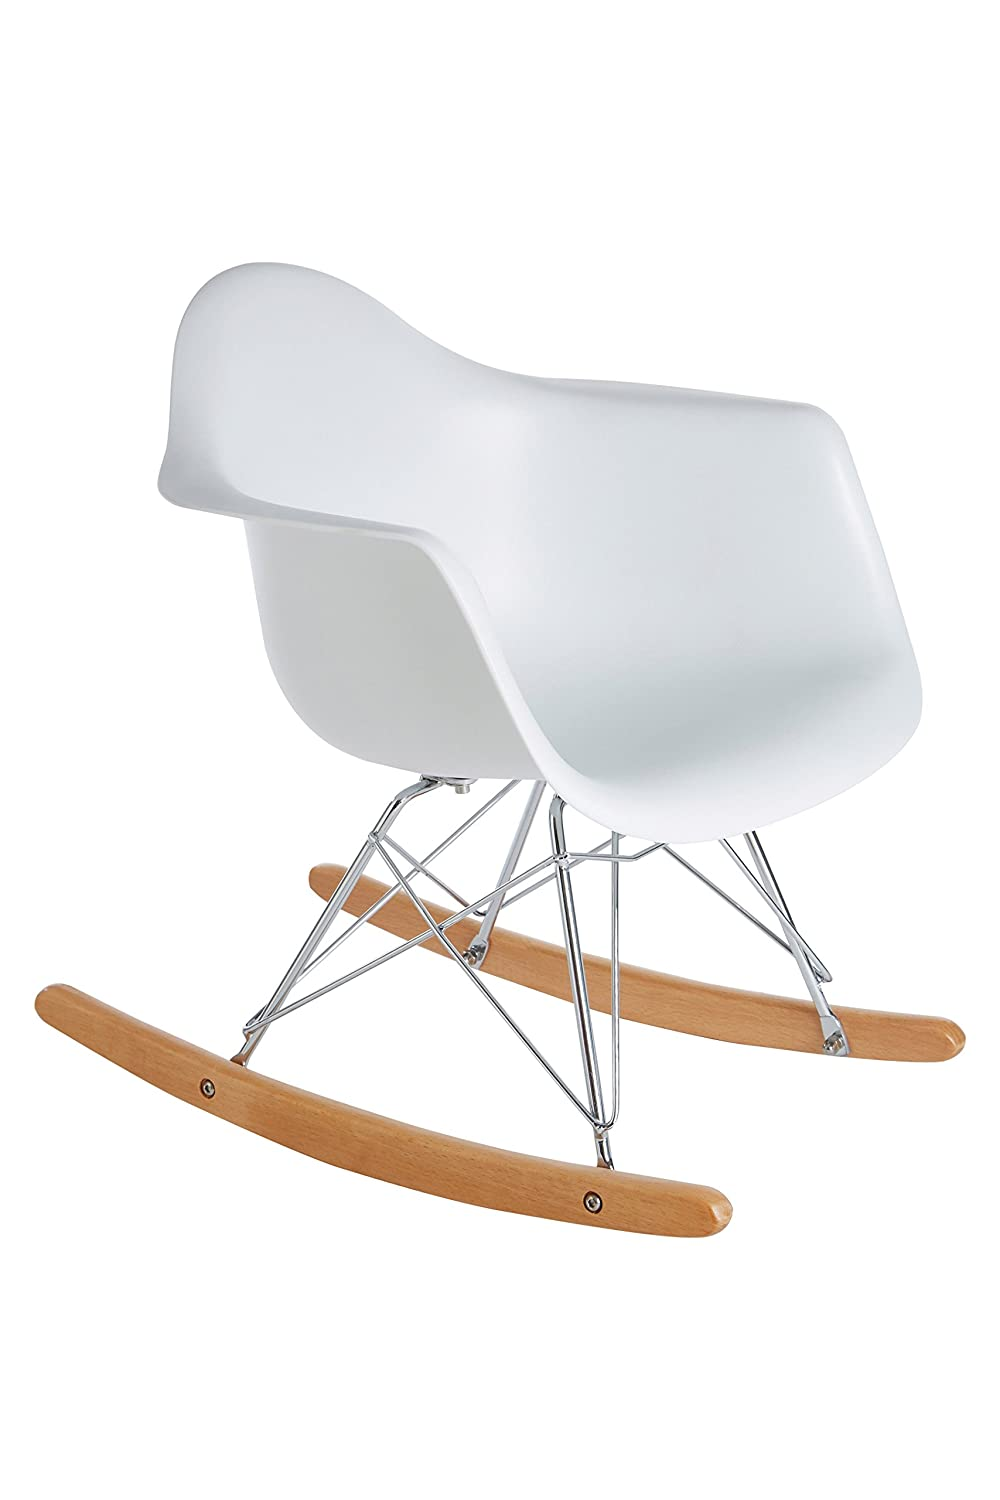 Premier Housewares Kids Rocking Chair, Plastic - White 2404512